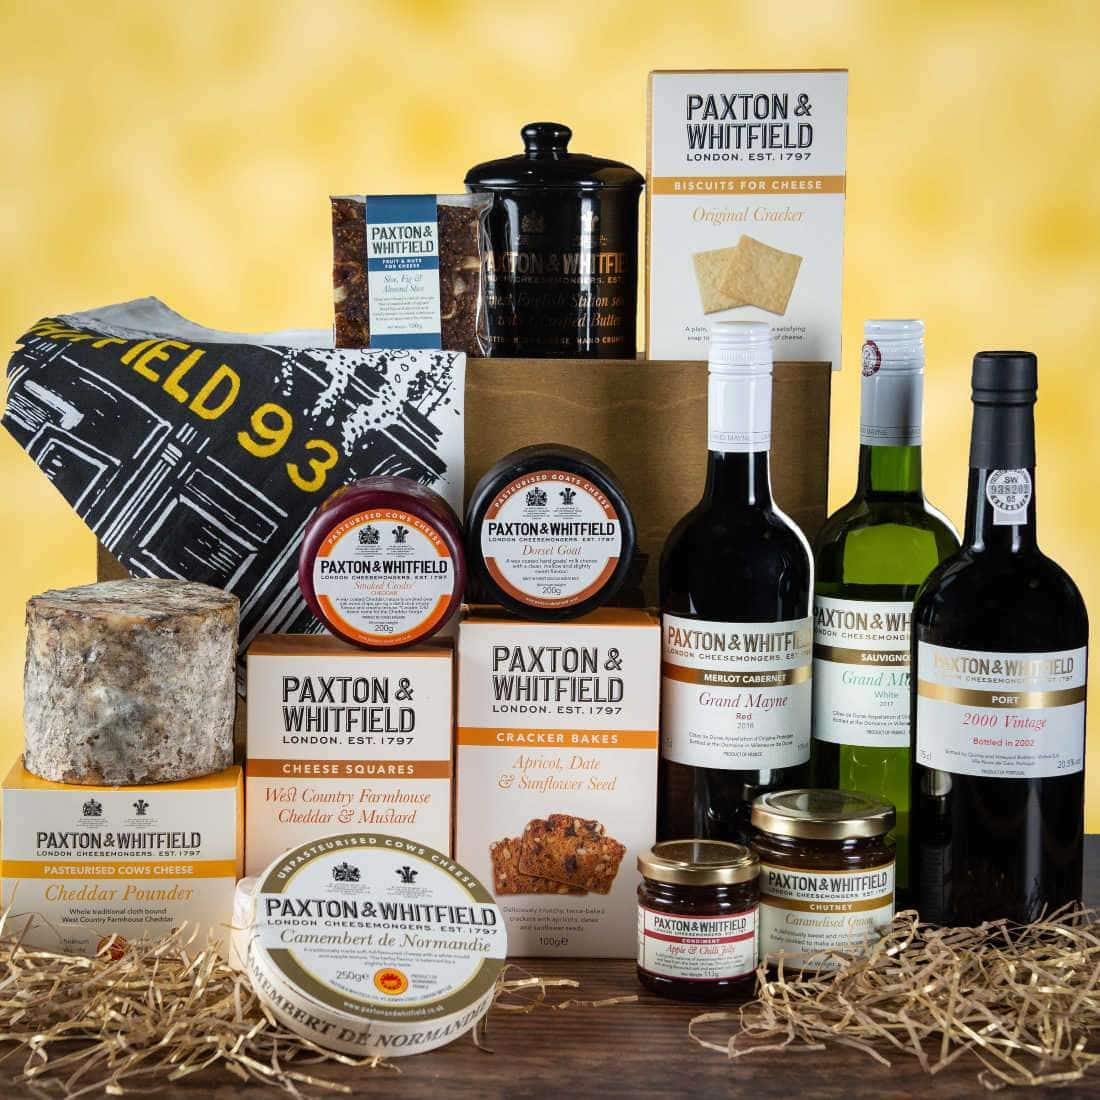 Paxton & Whitfield's The Kensington Cheese and Wine Picnic Hamper